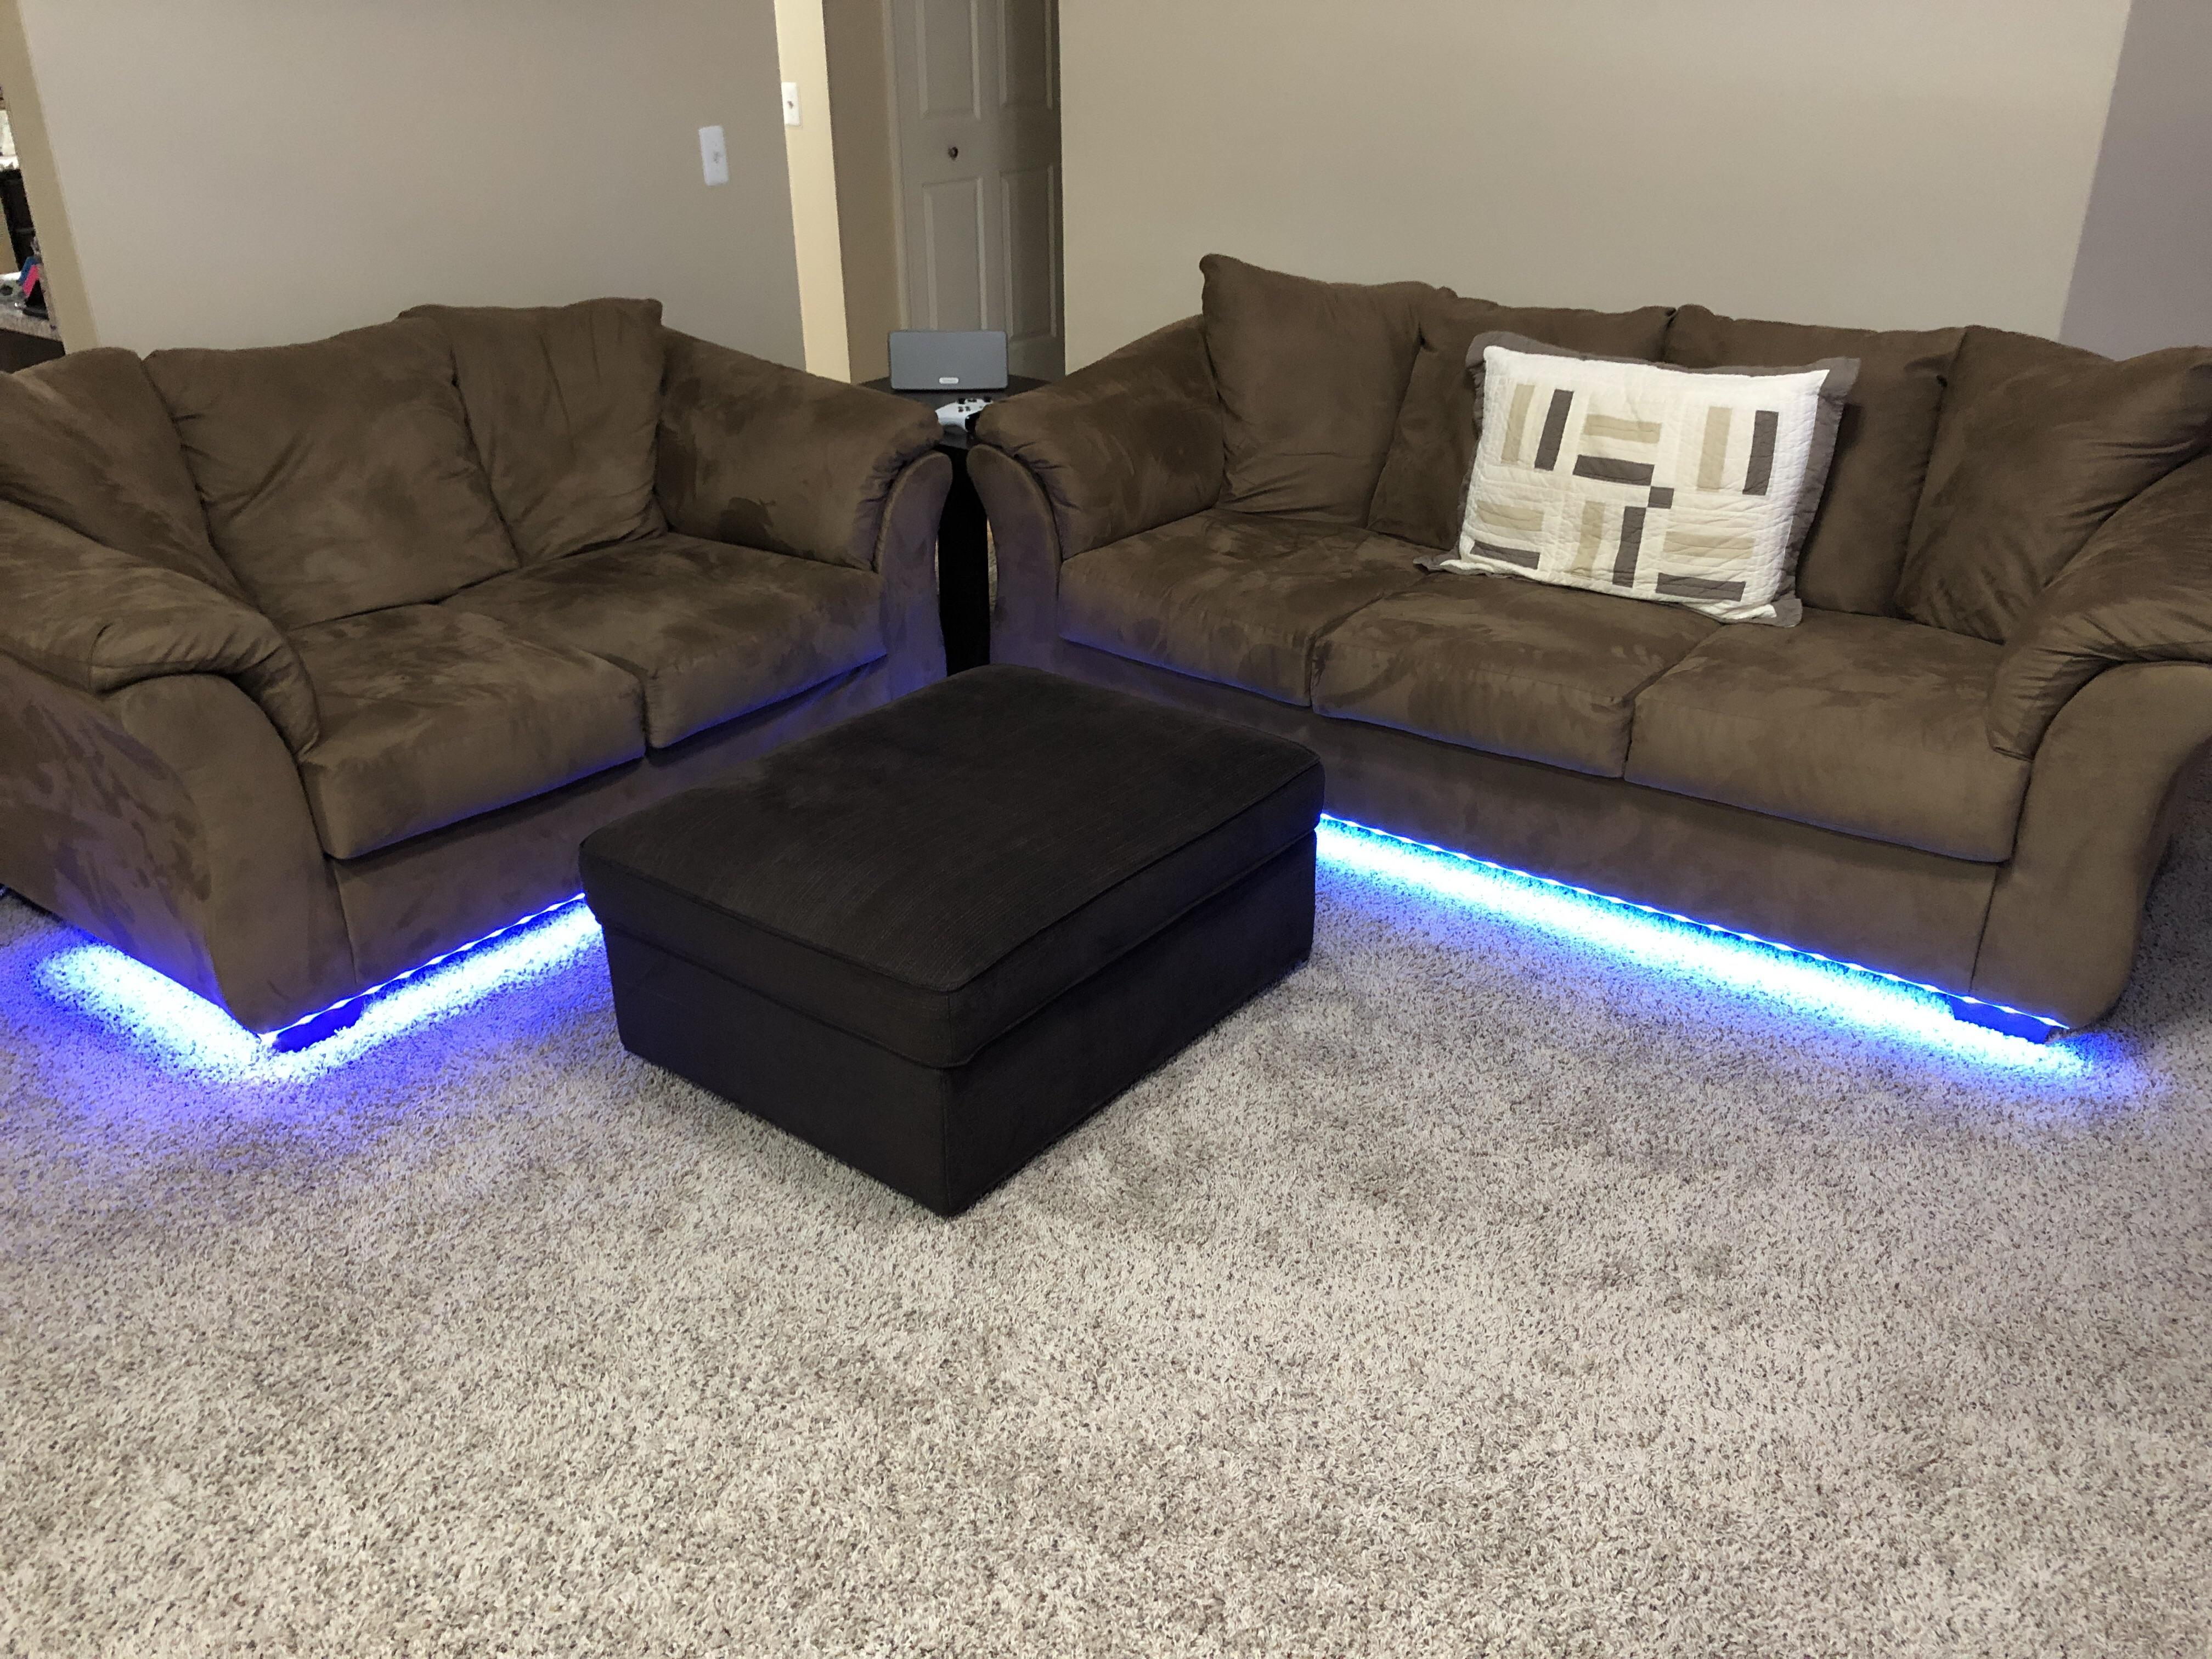 Sofa Couch Reddit Lightstrips Under Couch Hue